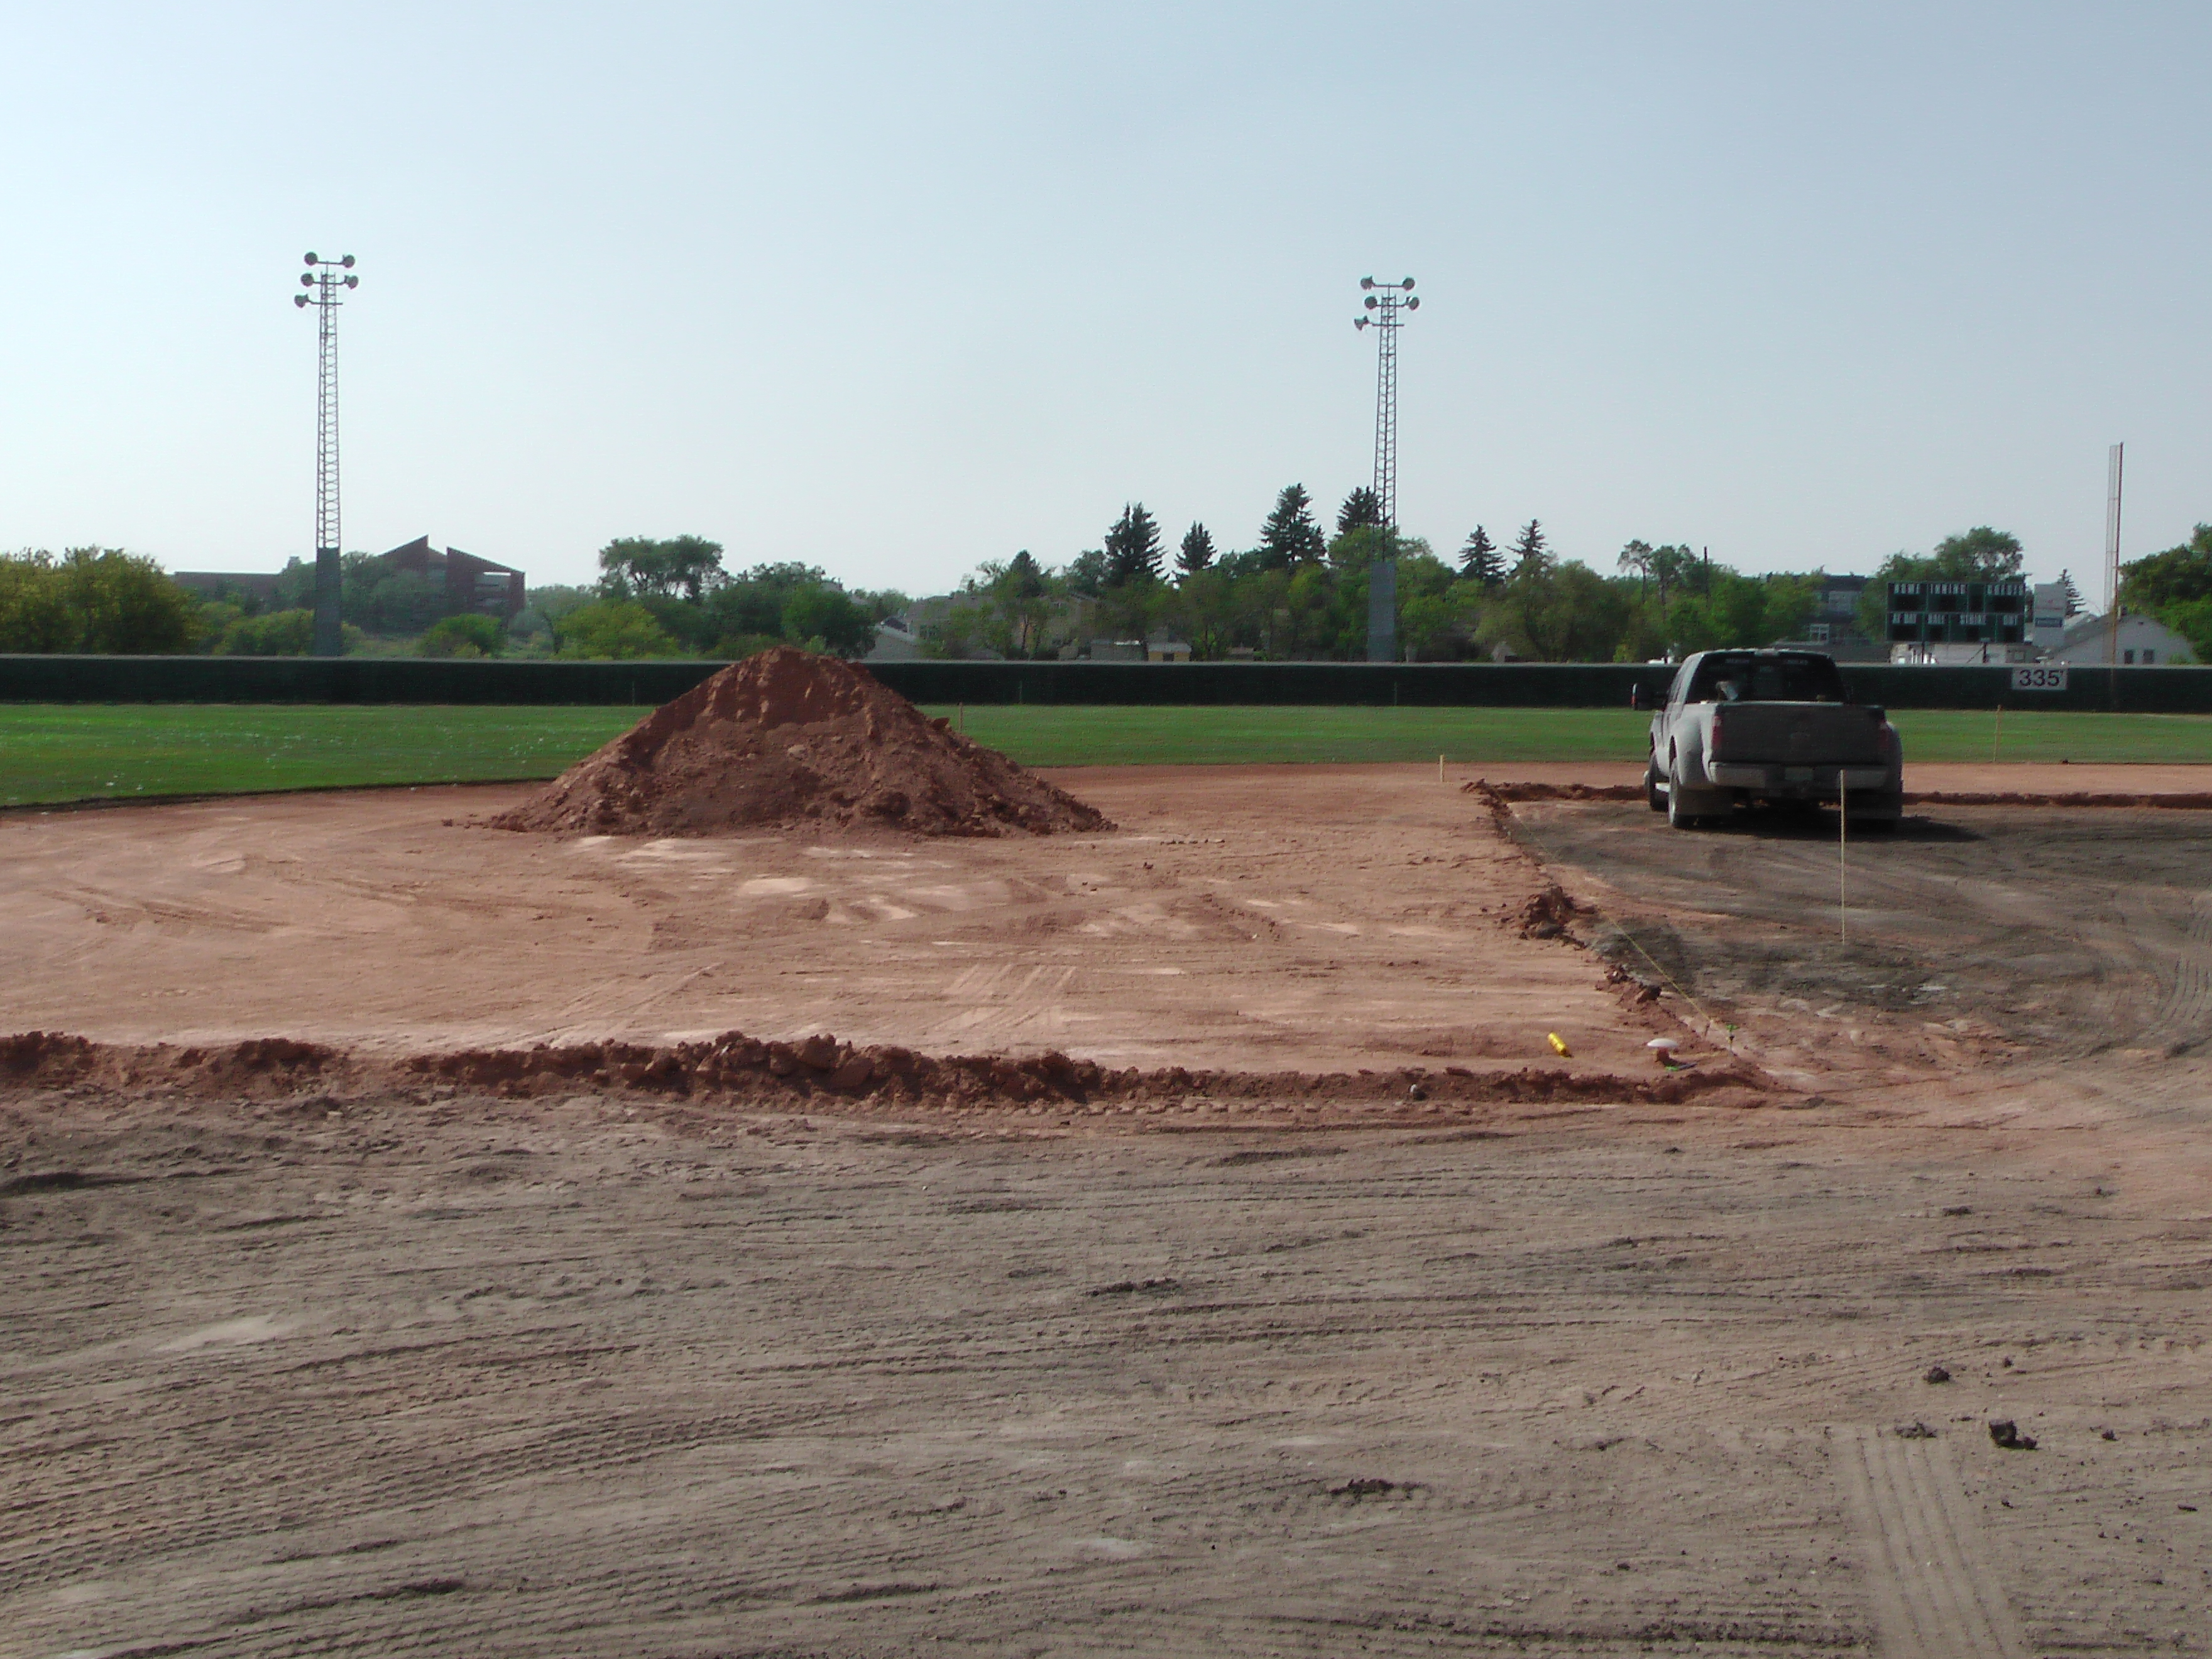 Aug 22 Optimist Park Field Renovations: New Top Soil Going In, after 45 dump trucks of dirt and grass removed! Pics and Video...check back for more!  - Image 1